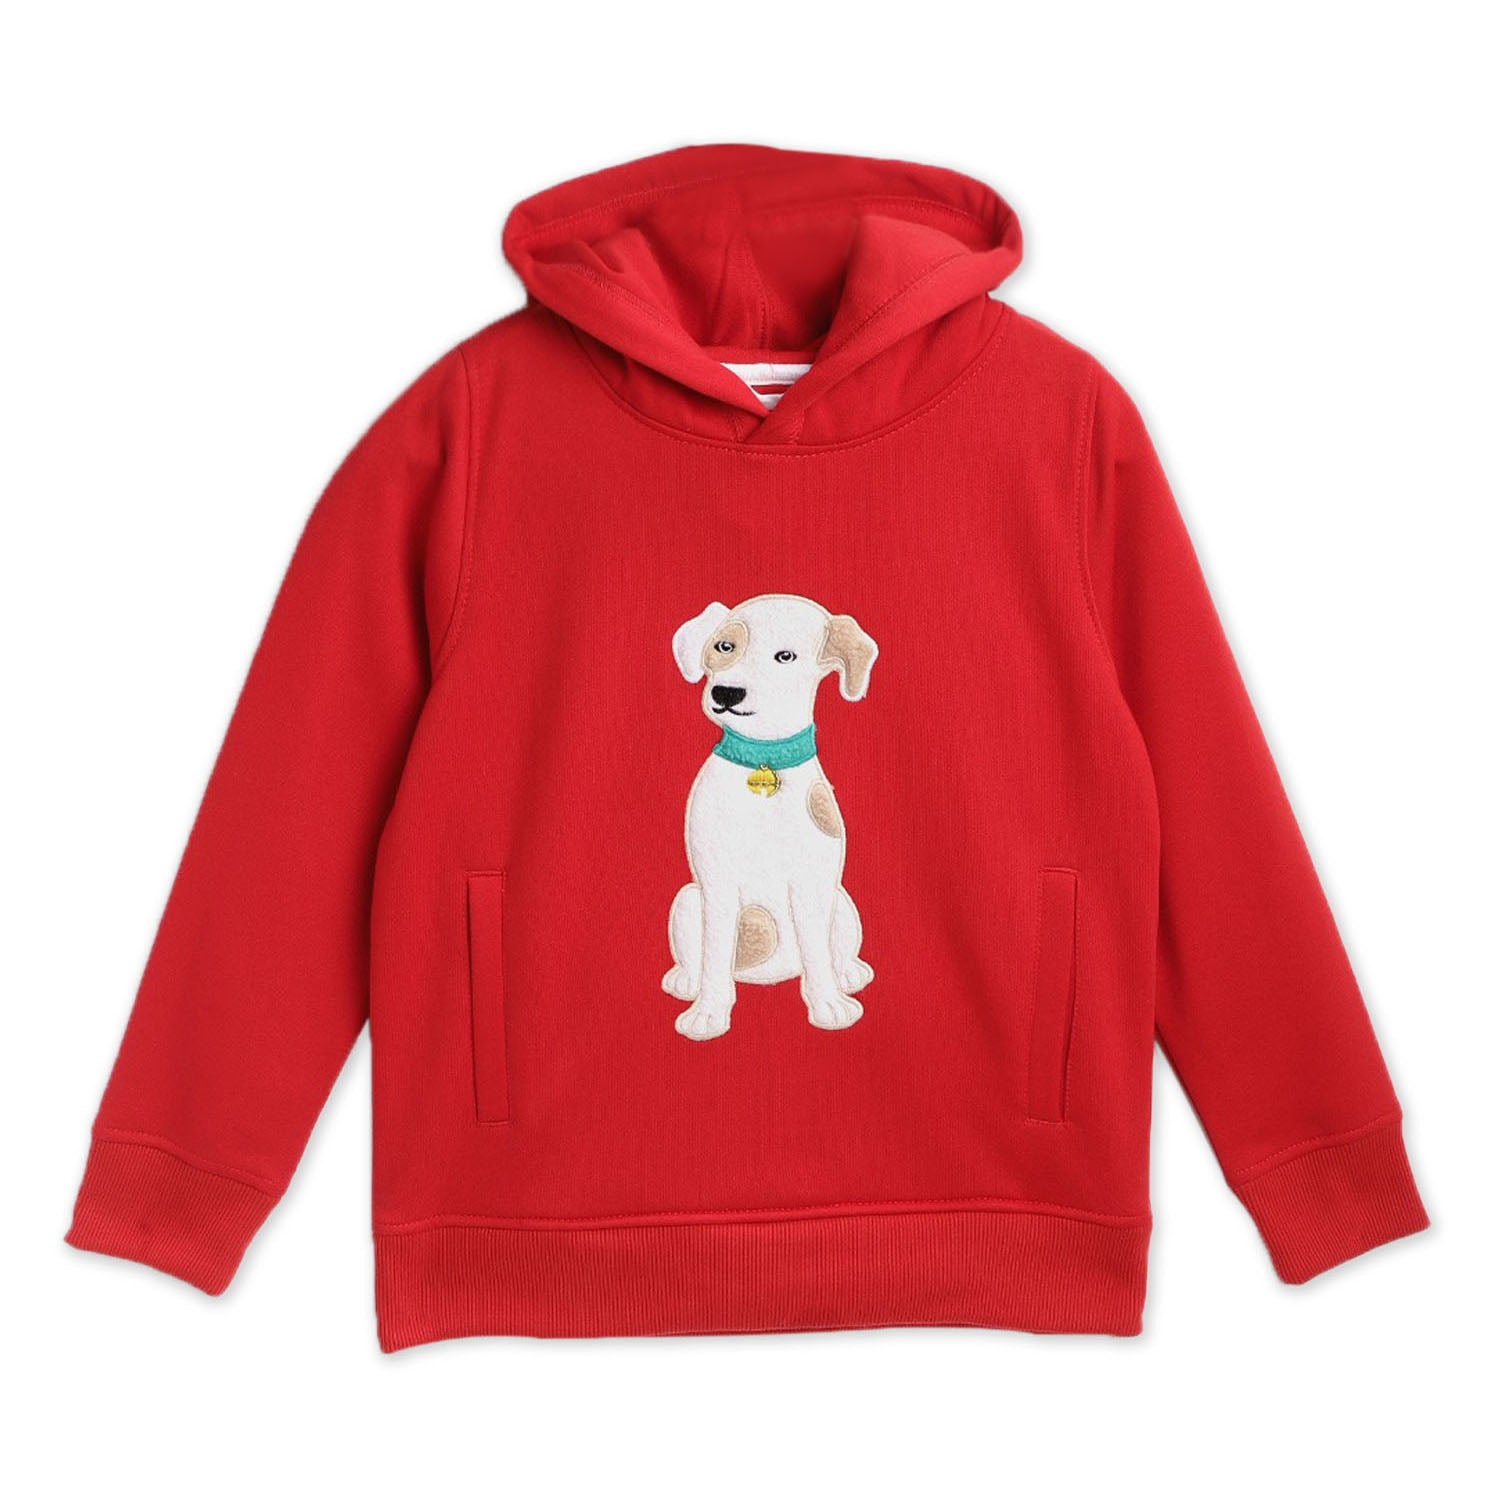 Animal-Applique-Hoodie-Sweatshirt